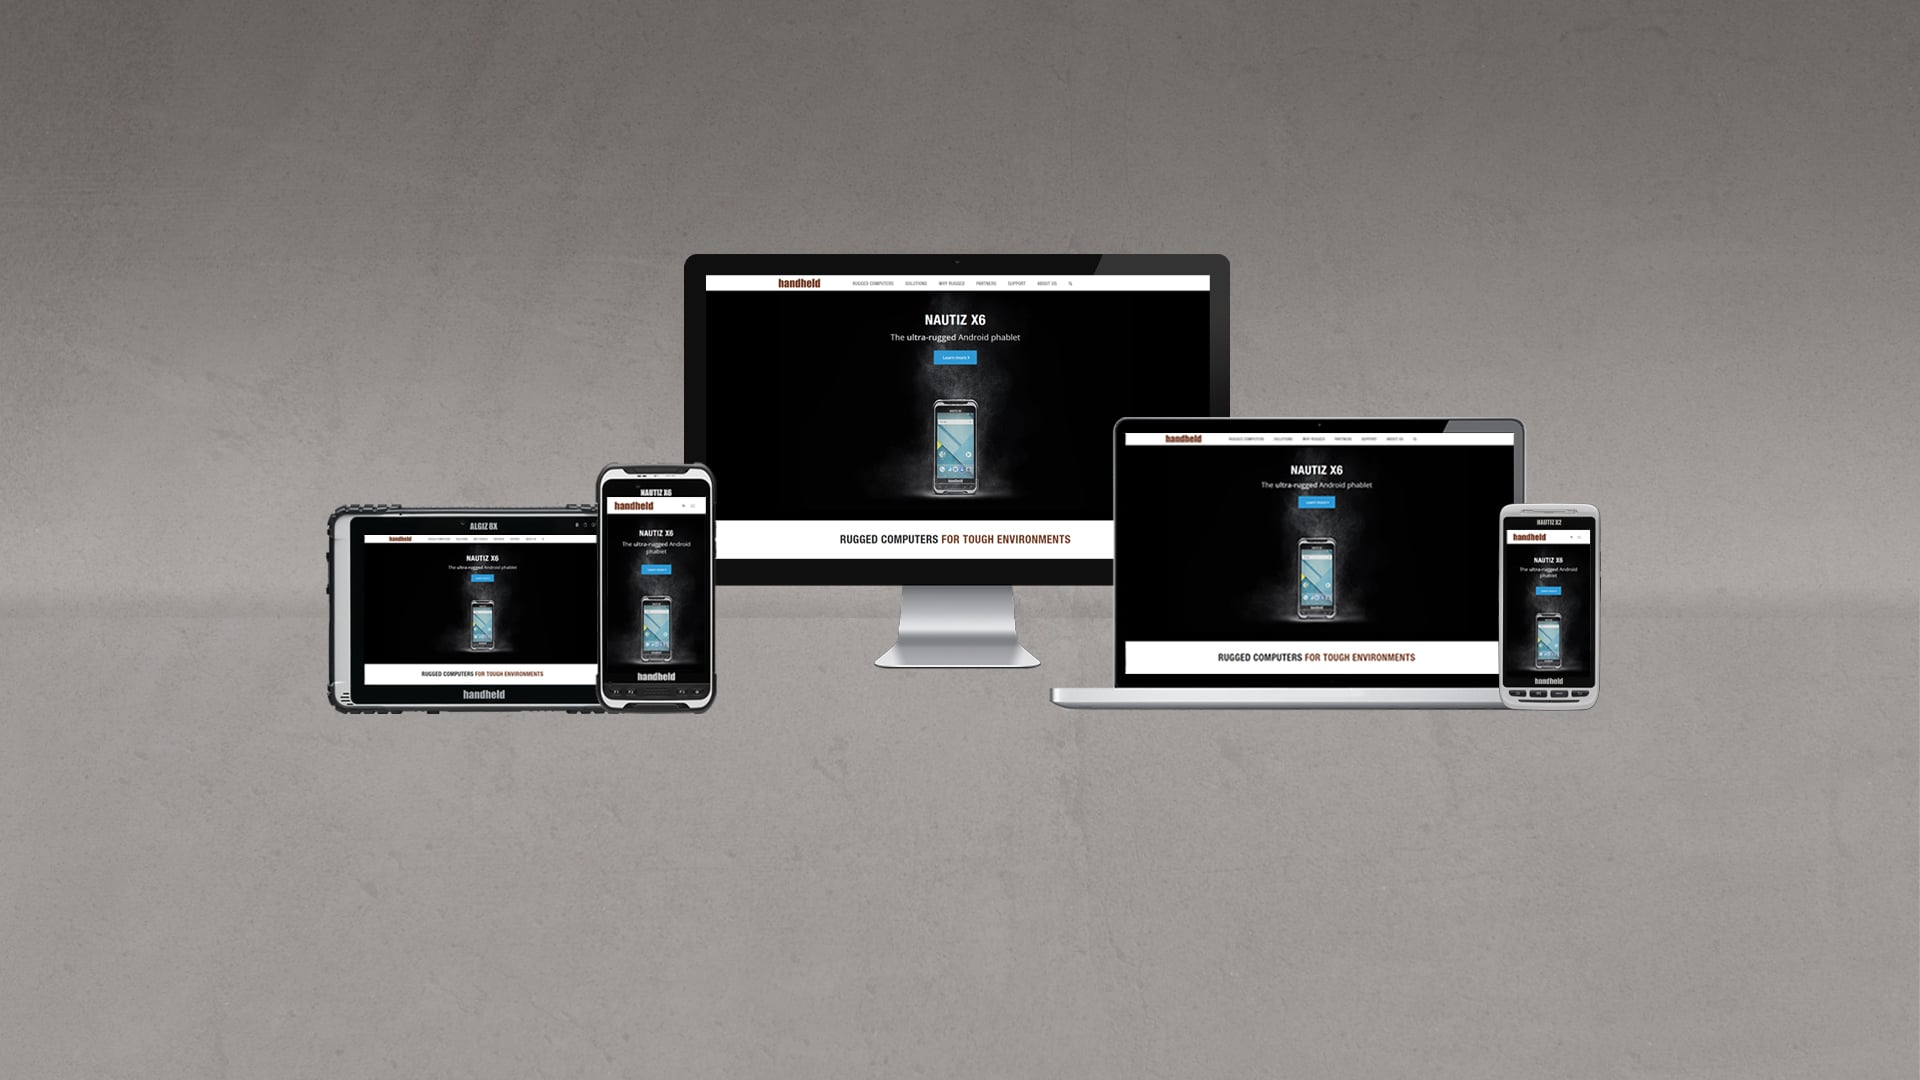 handheld devices showing the new handheld website